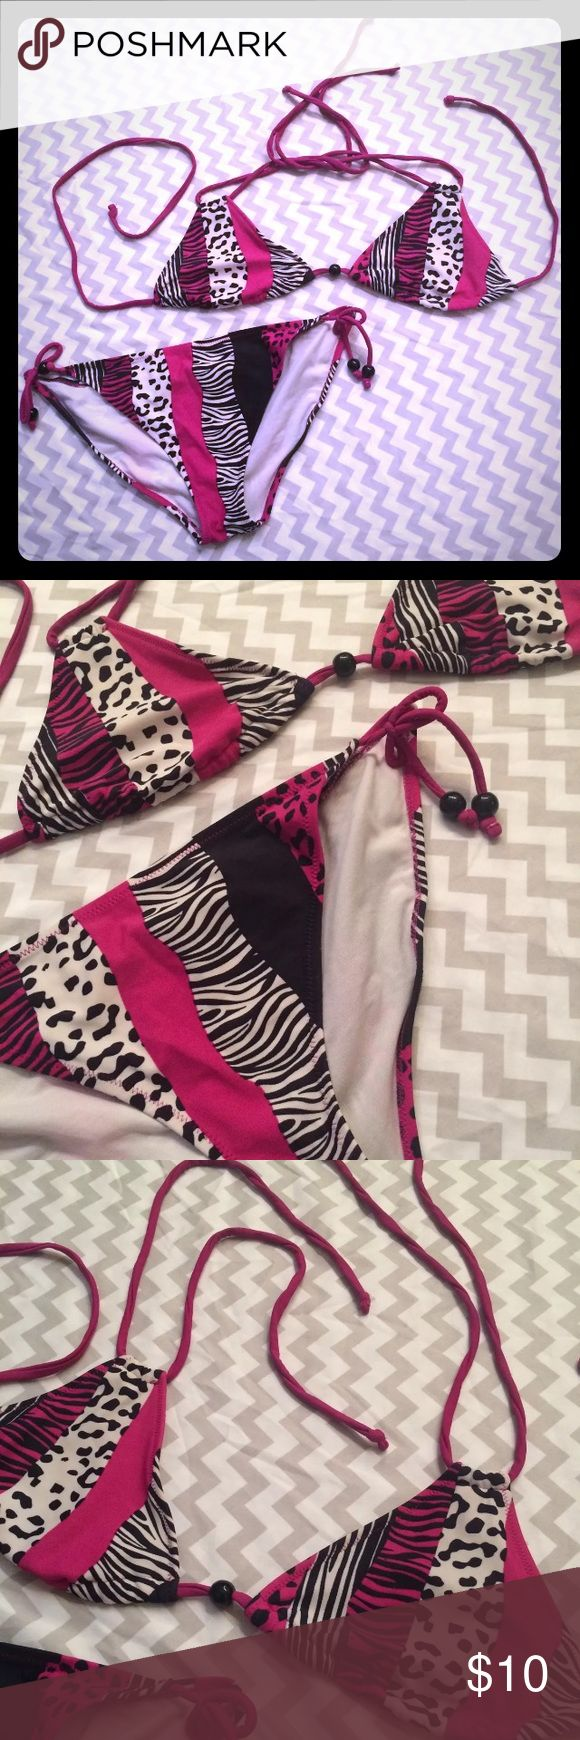 🏝Sold⛱Animal Print Two Piece Bikini Ladies two piece bikini bathing suit, hot pink, black, white animal print designs with beads. The top and bottoms are both attached by ties making them slightly adjustable. The tags are no longer attached to tell size or brand but I believe it is a size large in women's. In gently used condition with no stains or rips. Unbranded Swim Bikinis